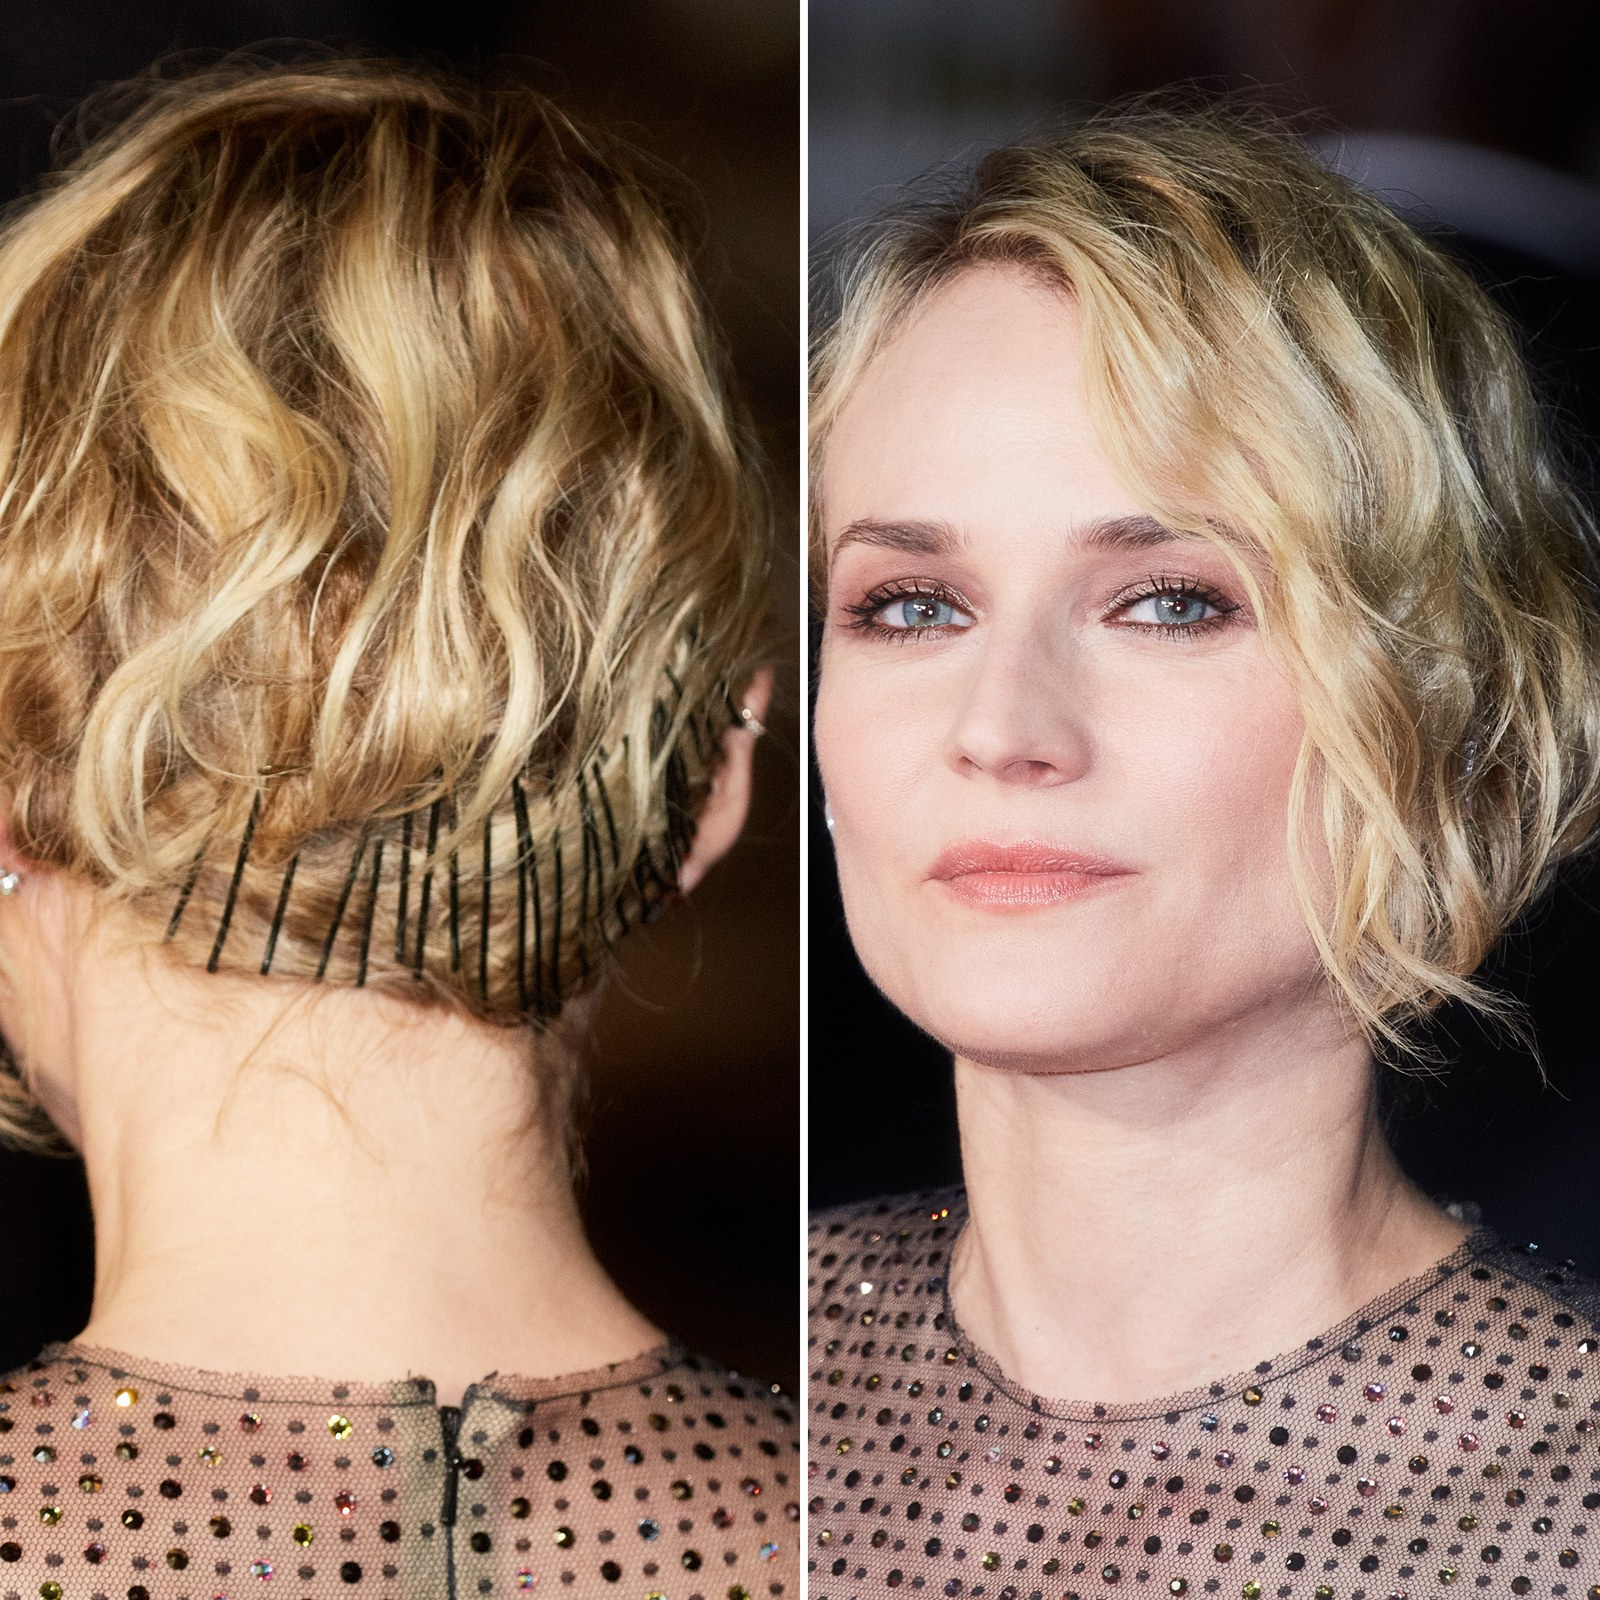 10 Wedding Hairstyle Ideas For Short Hair – Allure Within Hairstyles For Short Hair For Wedding (View 17 of 25)